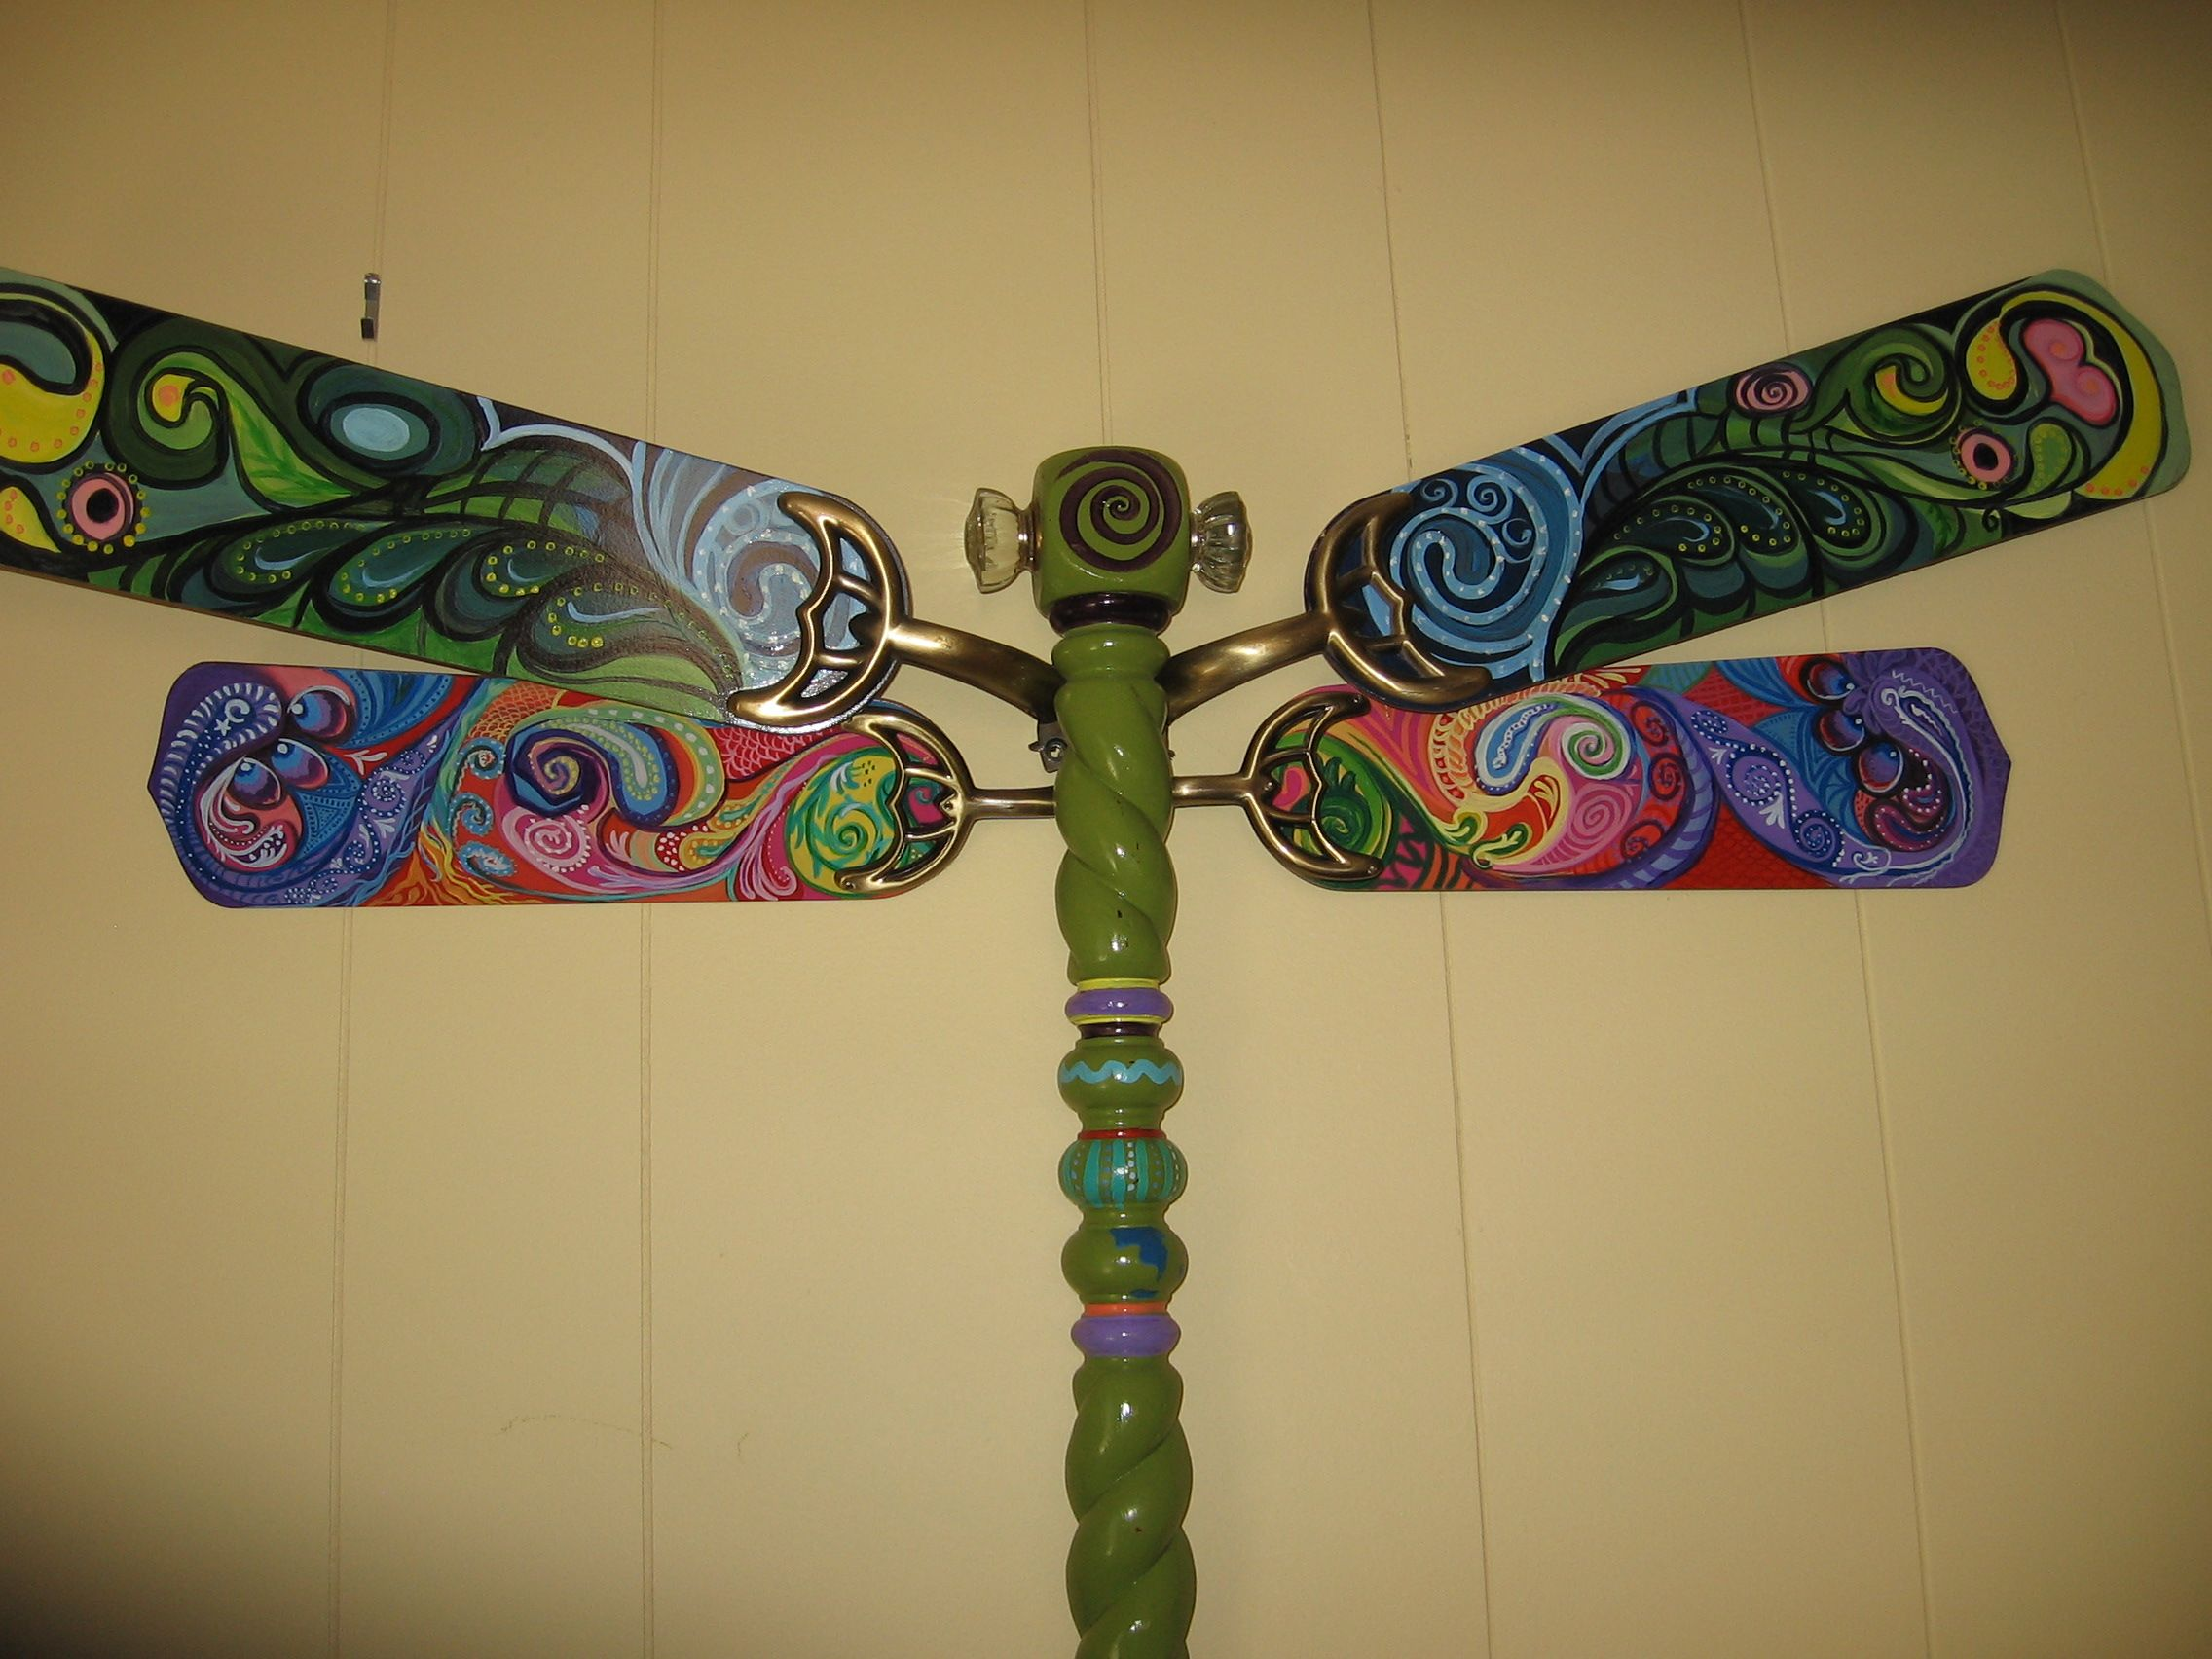 Pin By Nona Woodle On Craft Ideas Dragonfly Yard Art